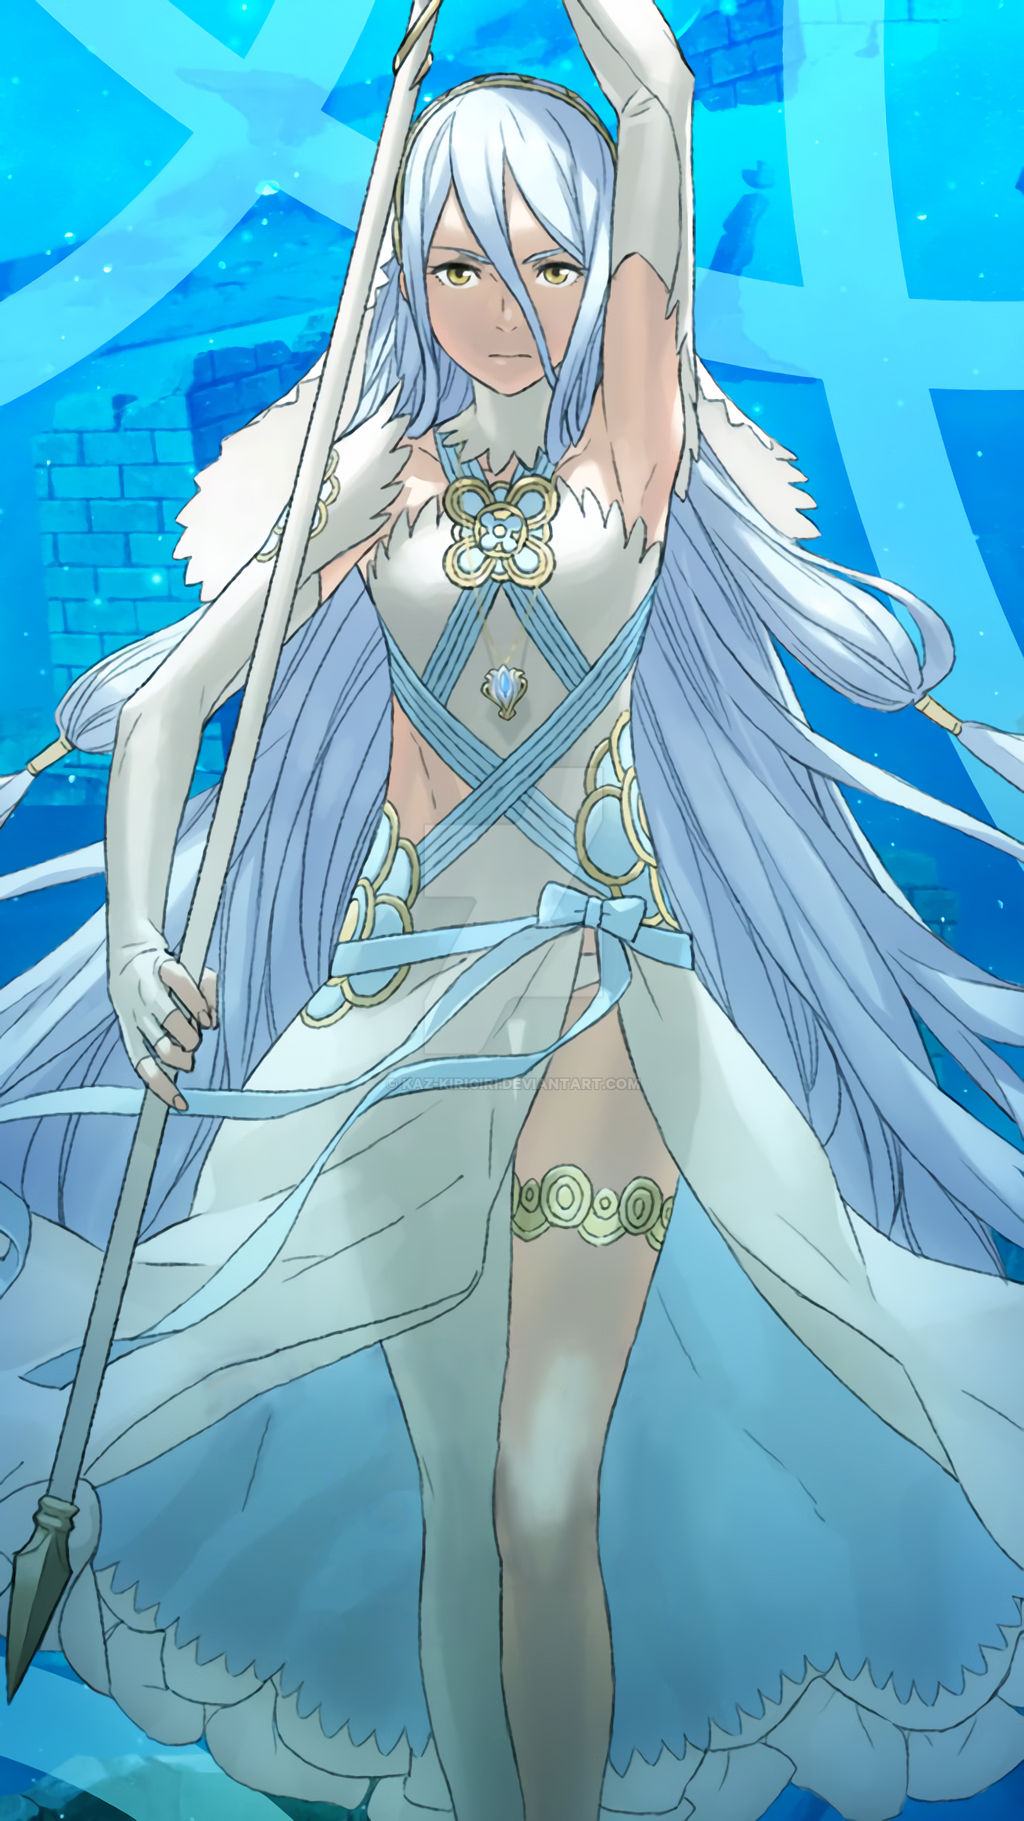 Fe Heroes October Wallpaper Azura By Kaz Kirigiri On Deviantart